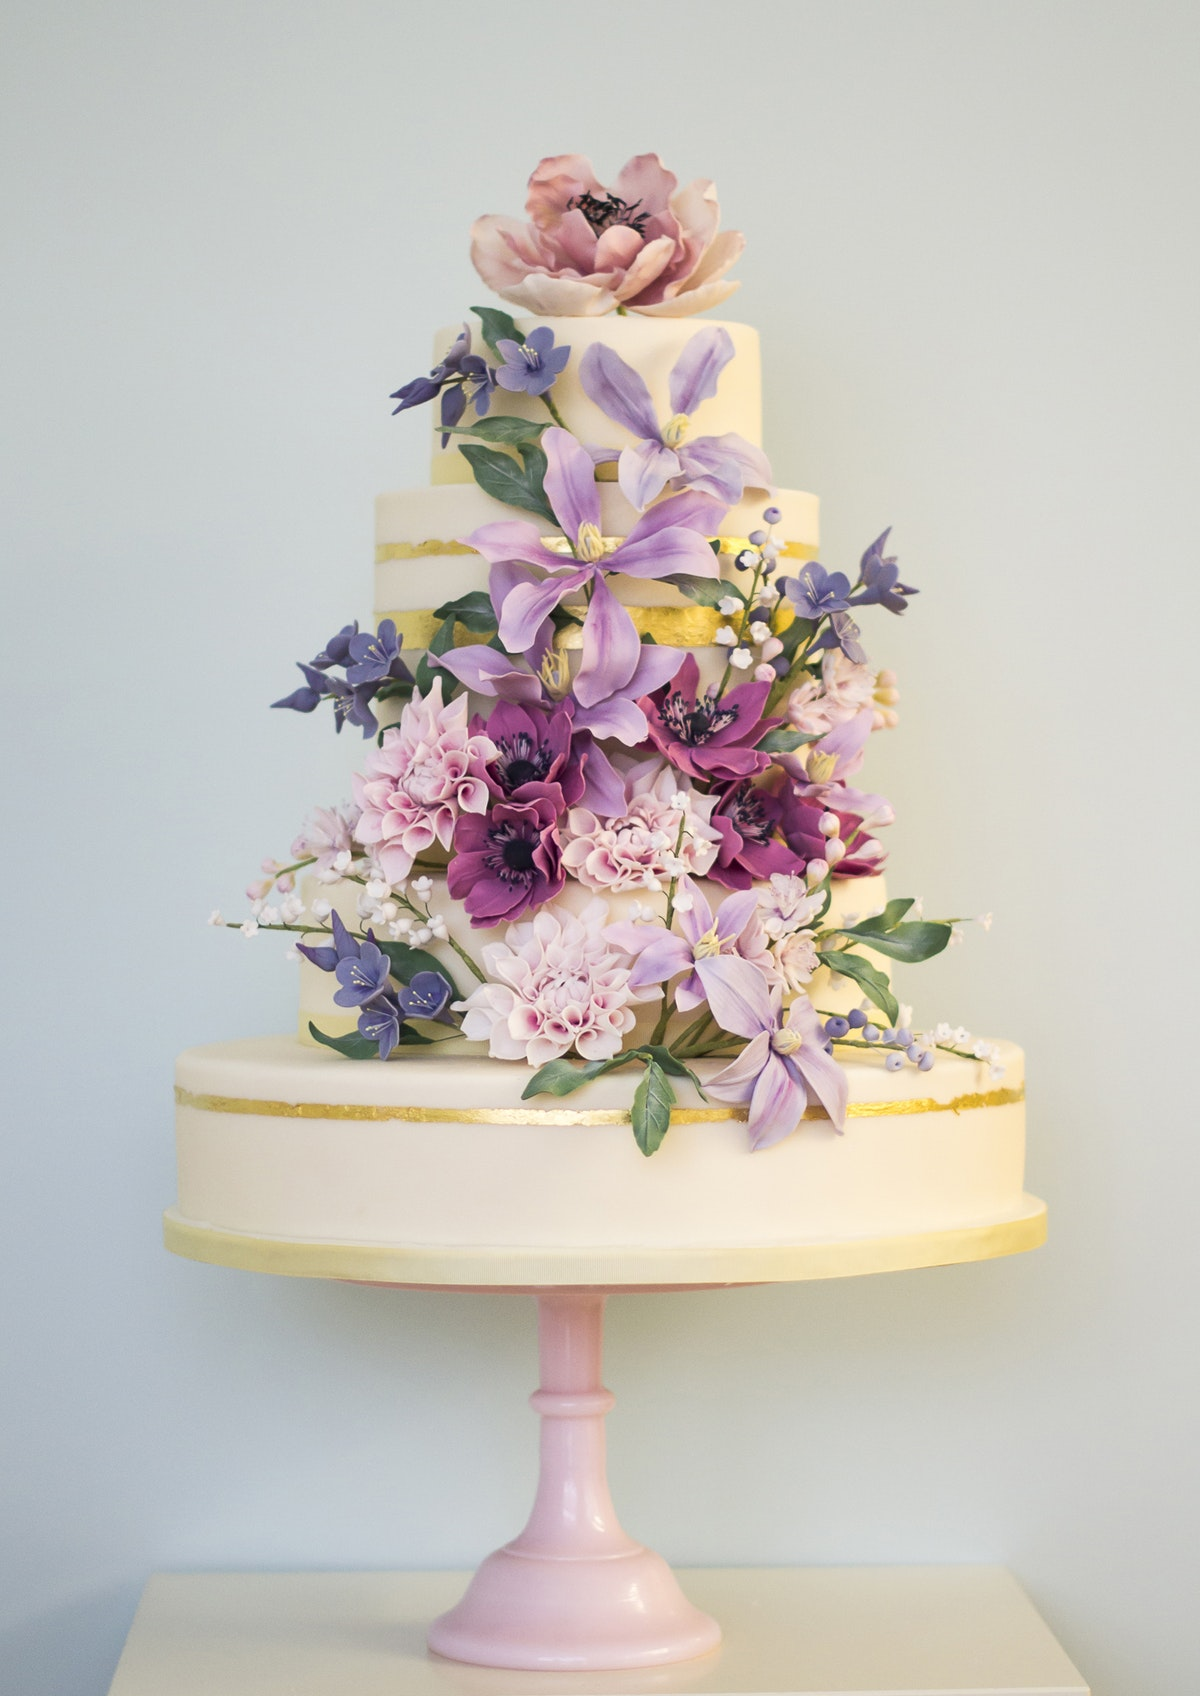 3 ideas for your wedding cake